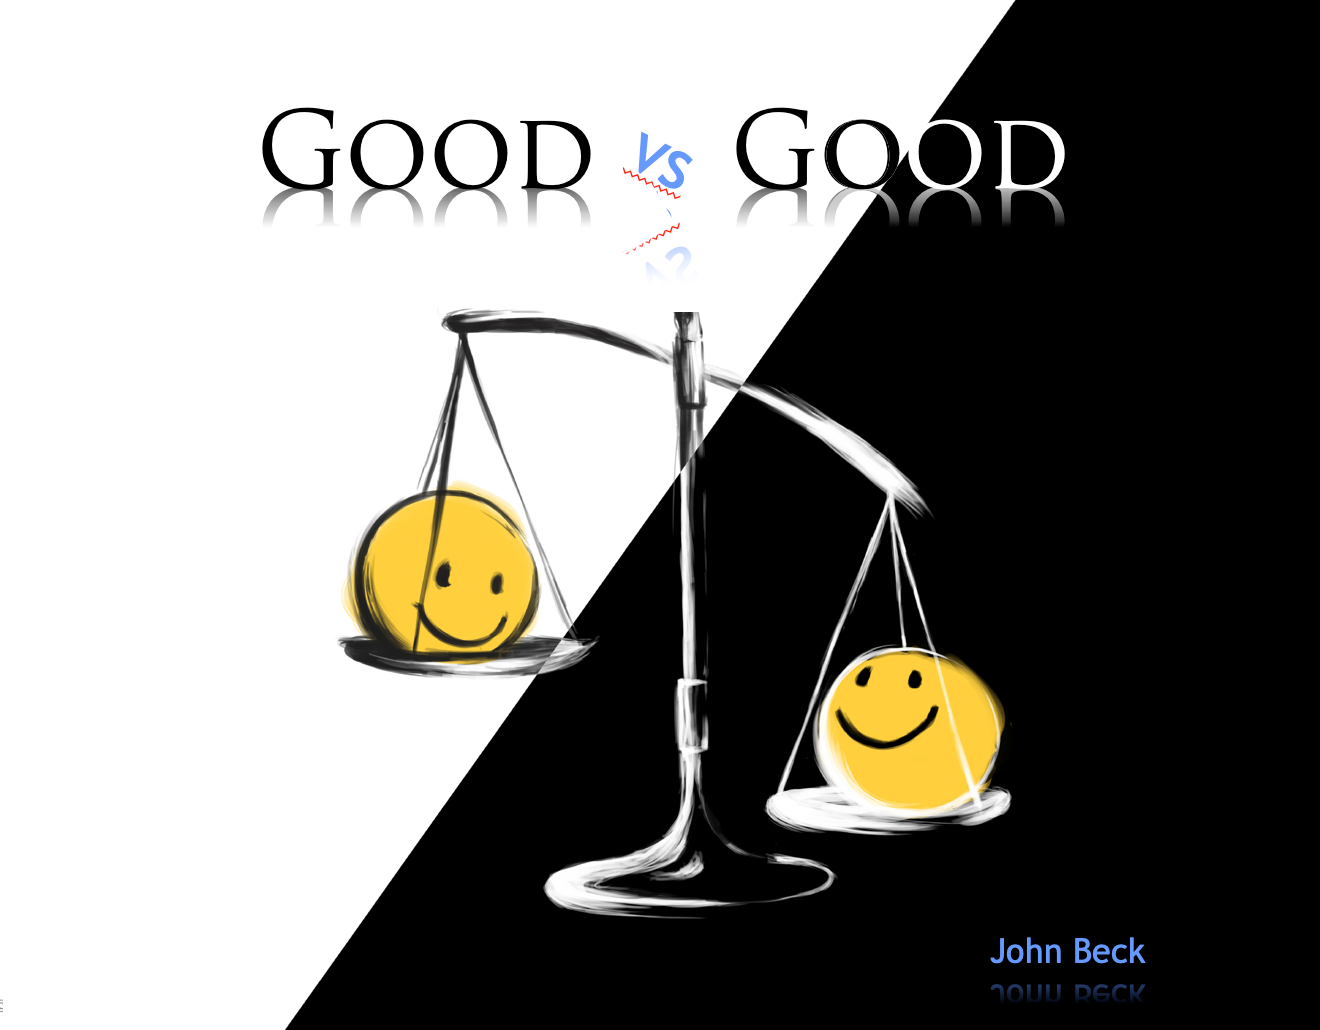 Really nice review of Good vs Good